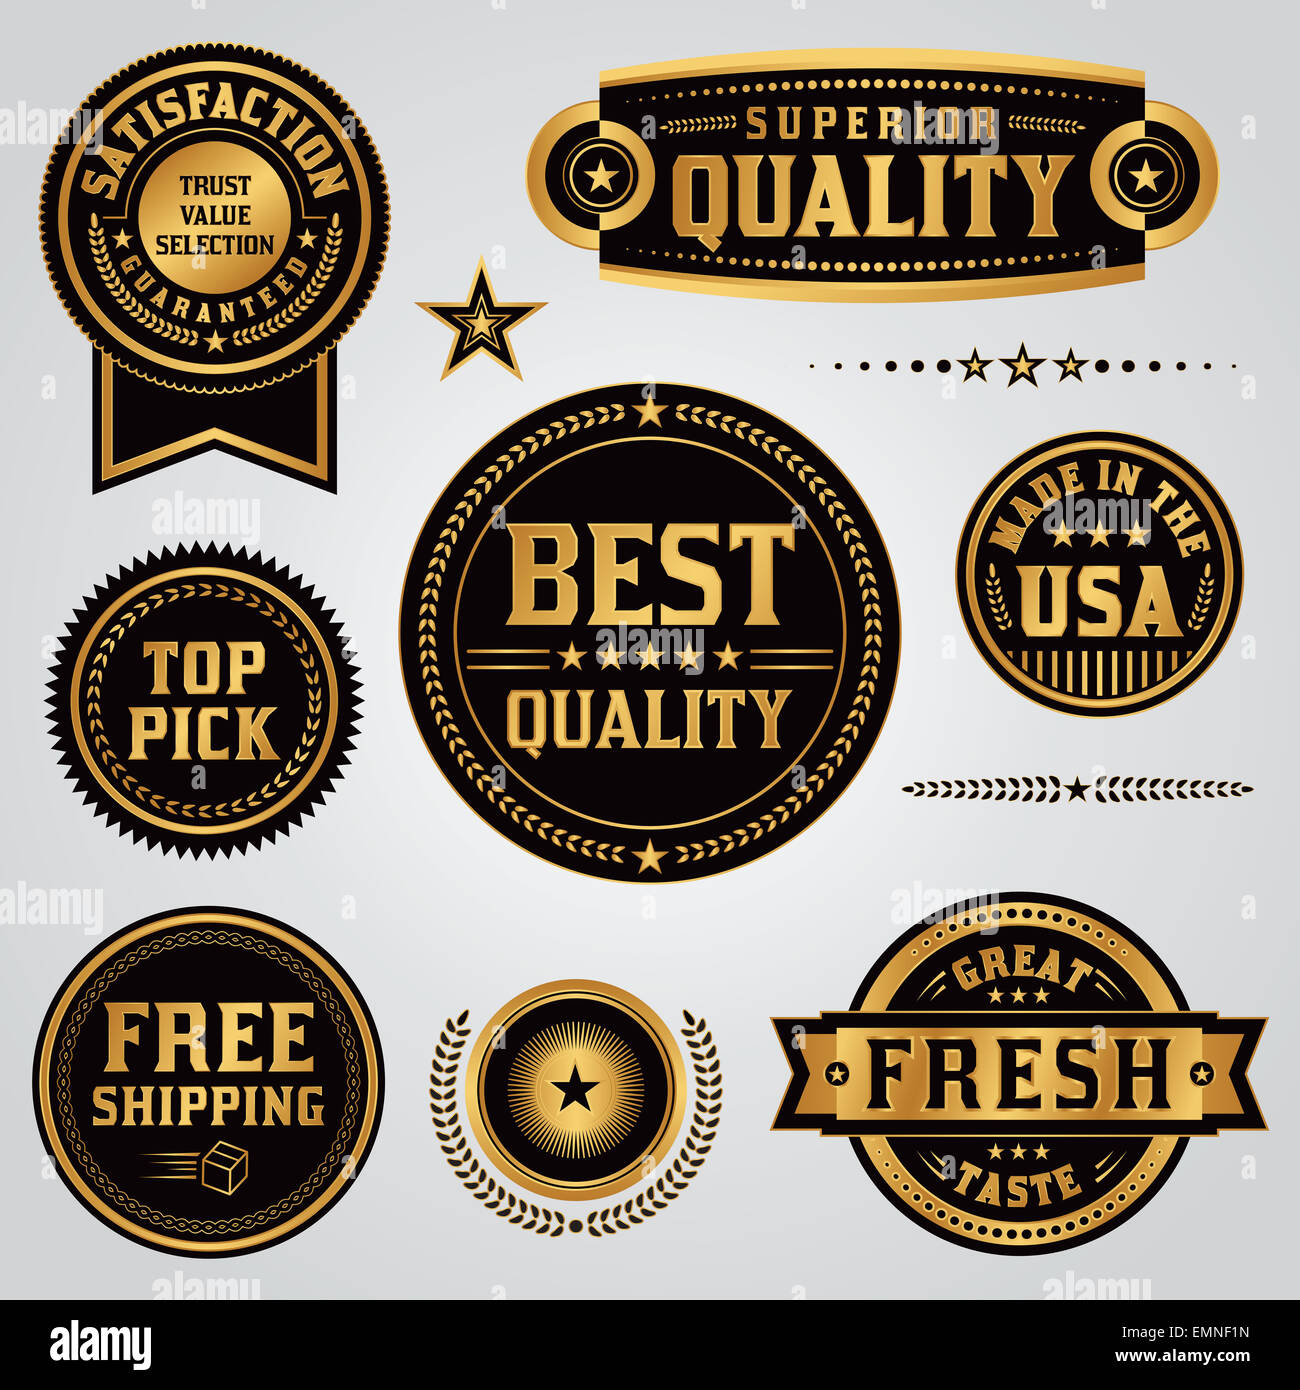 a set of quality value satisfaction guarantee made in the usa